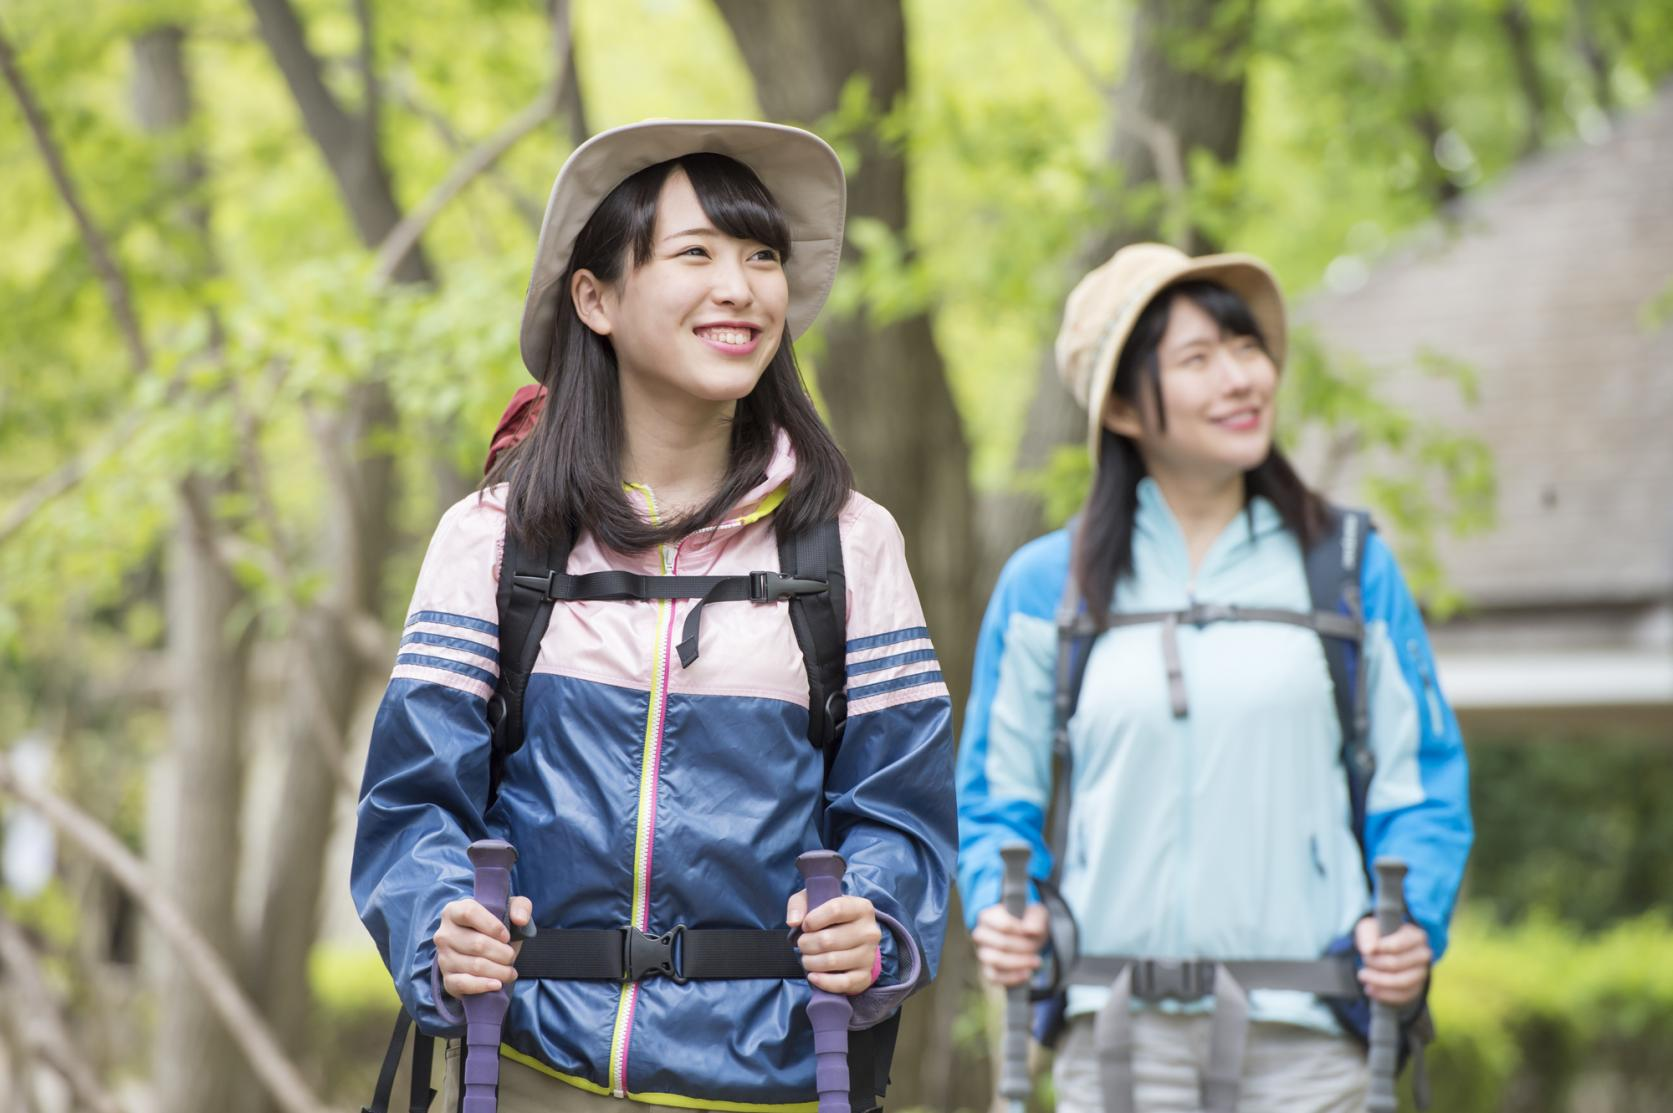 Hiking course that beginners can enjoy